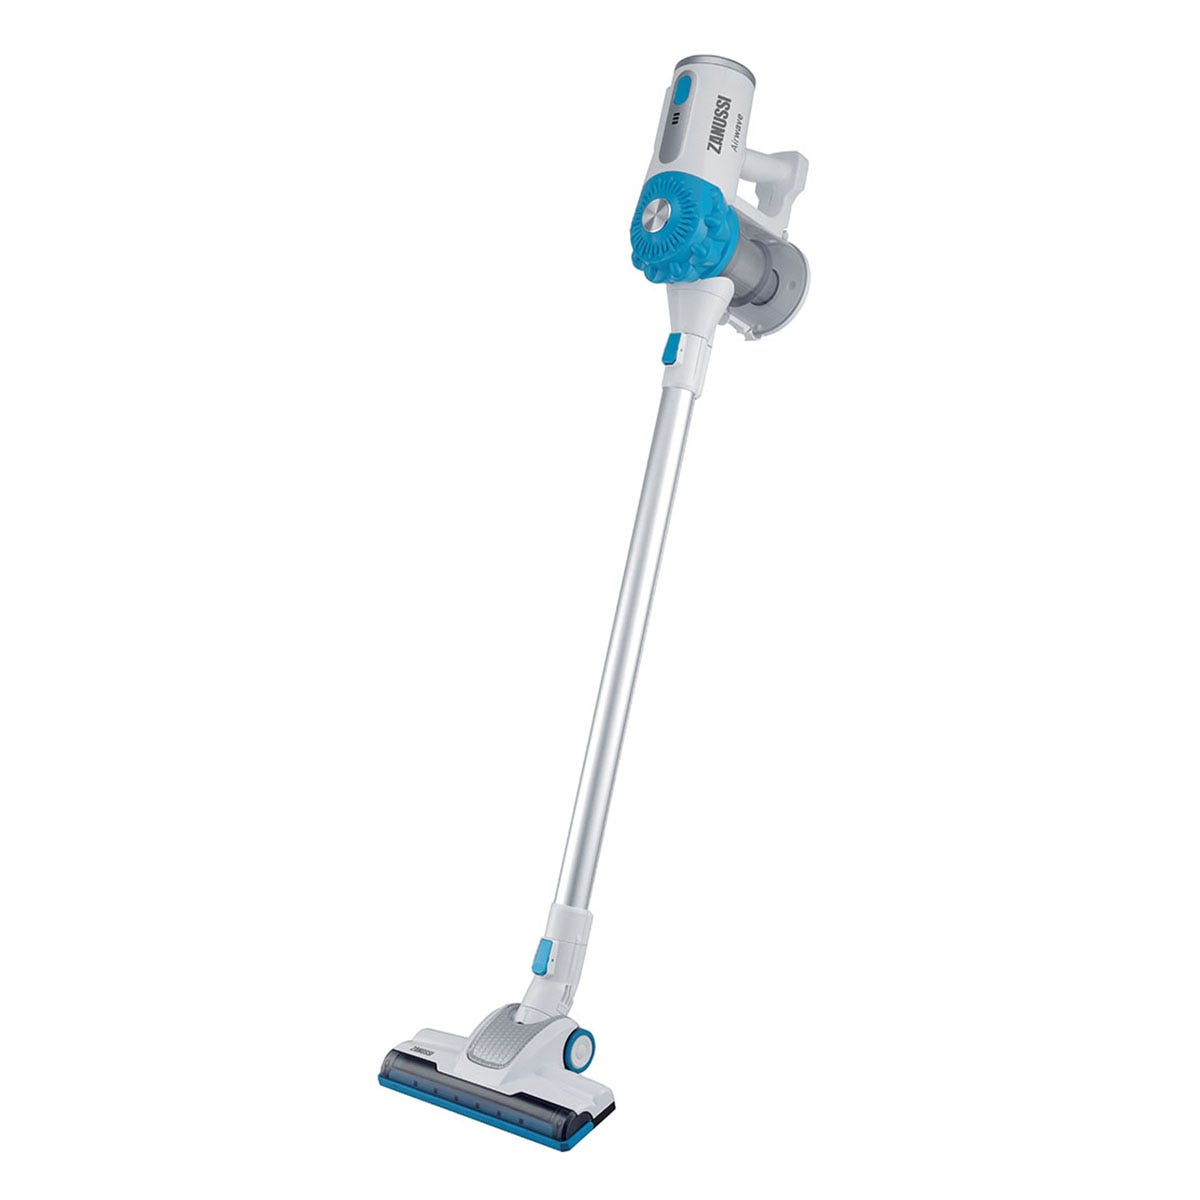 Zanussi ZHS-32802 Cordless Rechargeable Hand Stick Vacuum Cleaner- Blue